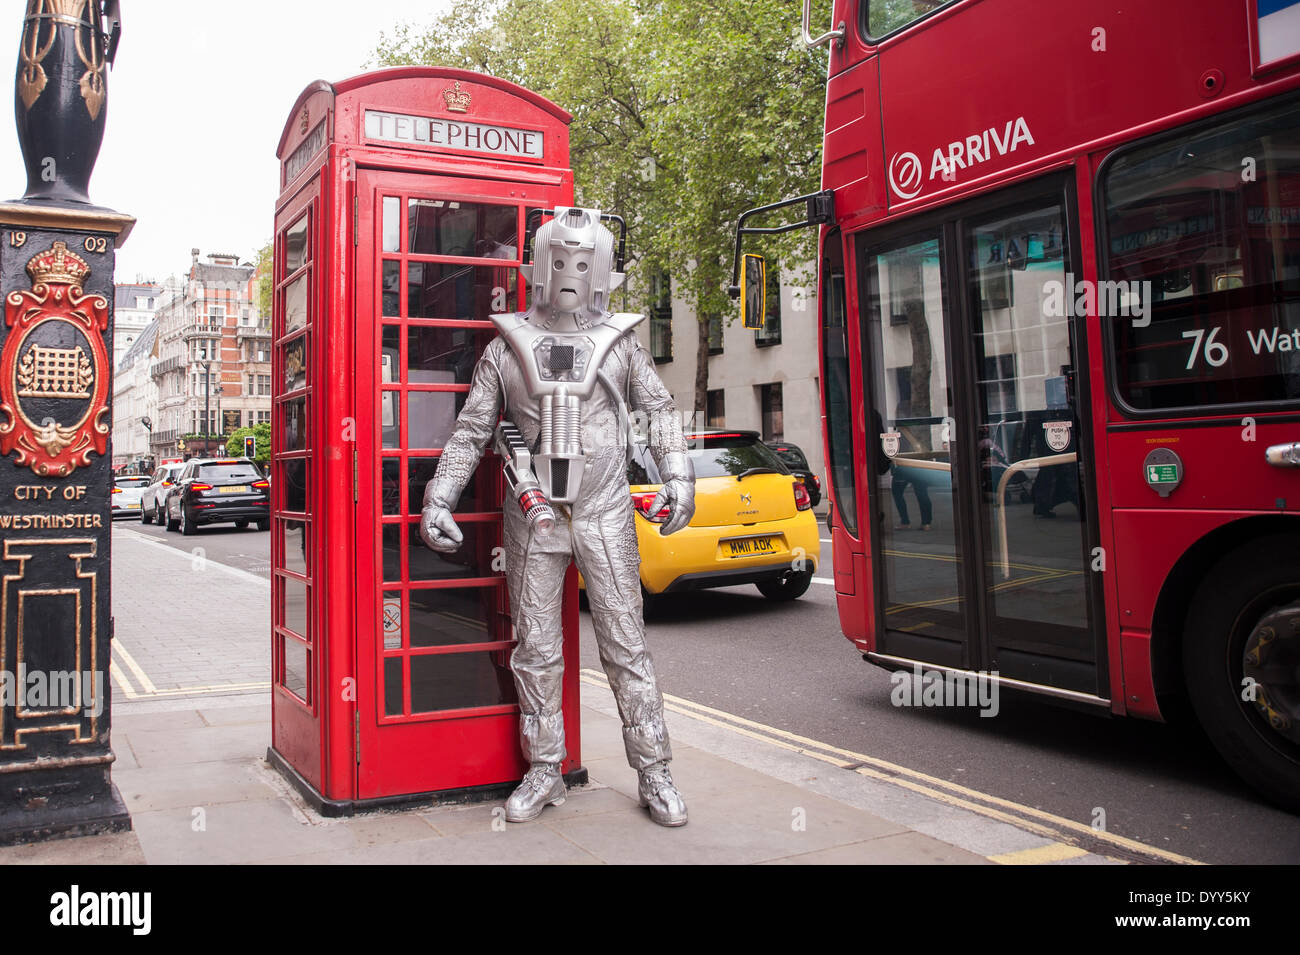 London, 27 April 2014 - people dressed as their favourite sc-fi characters take part in the Sci-Fi London 2014 costume parade starting at Somerset House and finishing at the BFI on the South Bank.  A Cyberman, from Doctor Who, stand by a telephone box.      Credit:  Stephen Chung/Alamy Live News - Stock Image